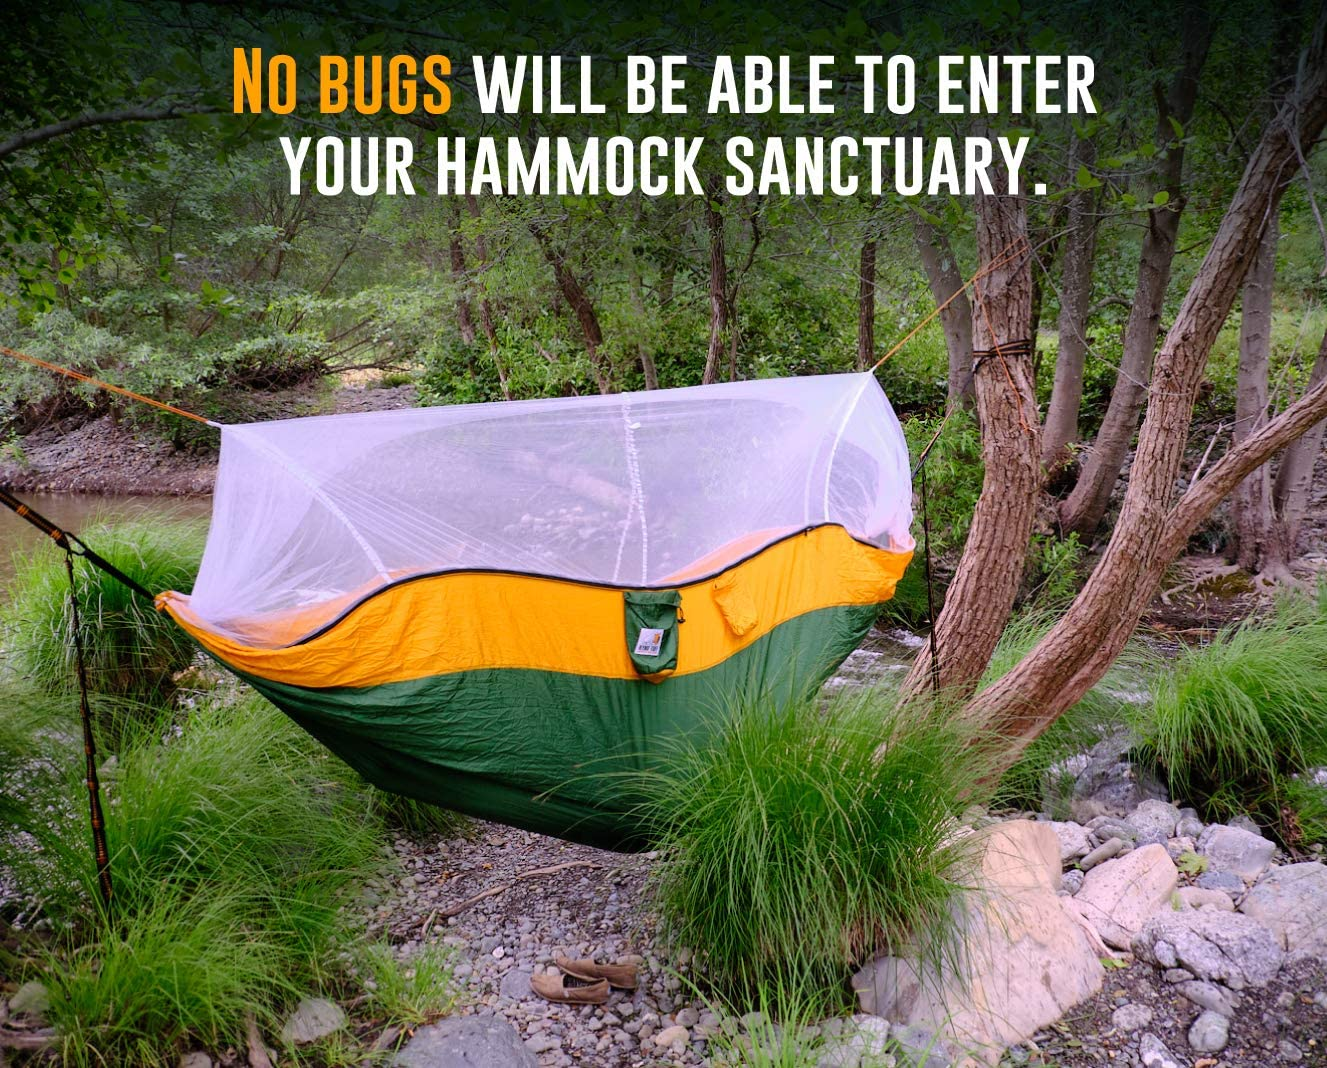 and Heavy Duty Carabiners Included. Ryno Tuff Camping Hammock with Mosquito Net Safe Tree Straps Extra Pocket Reinforced Not to Tear But Still Lightweight Double Hammock with Bug Net